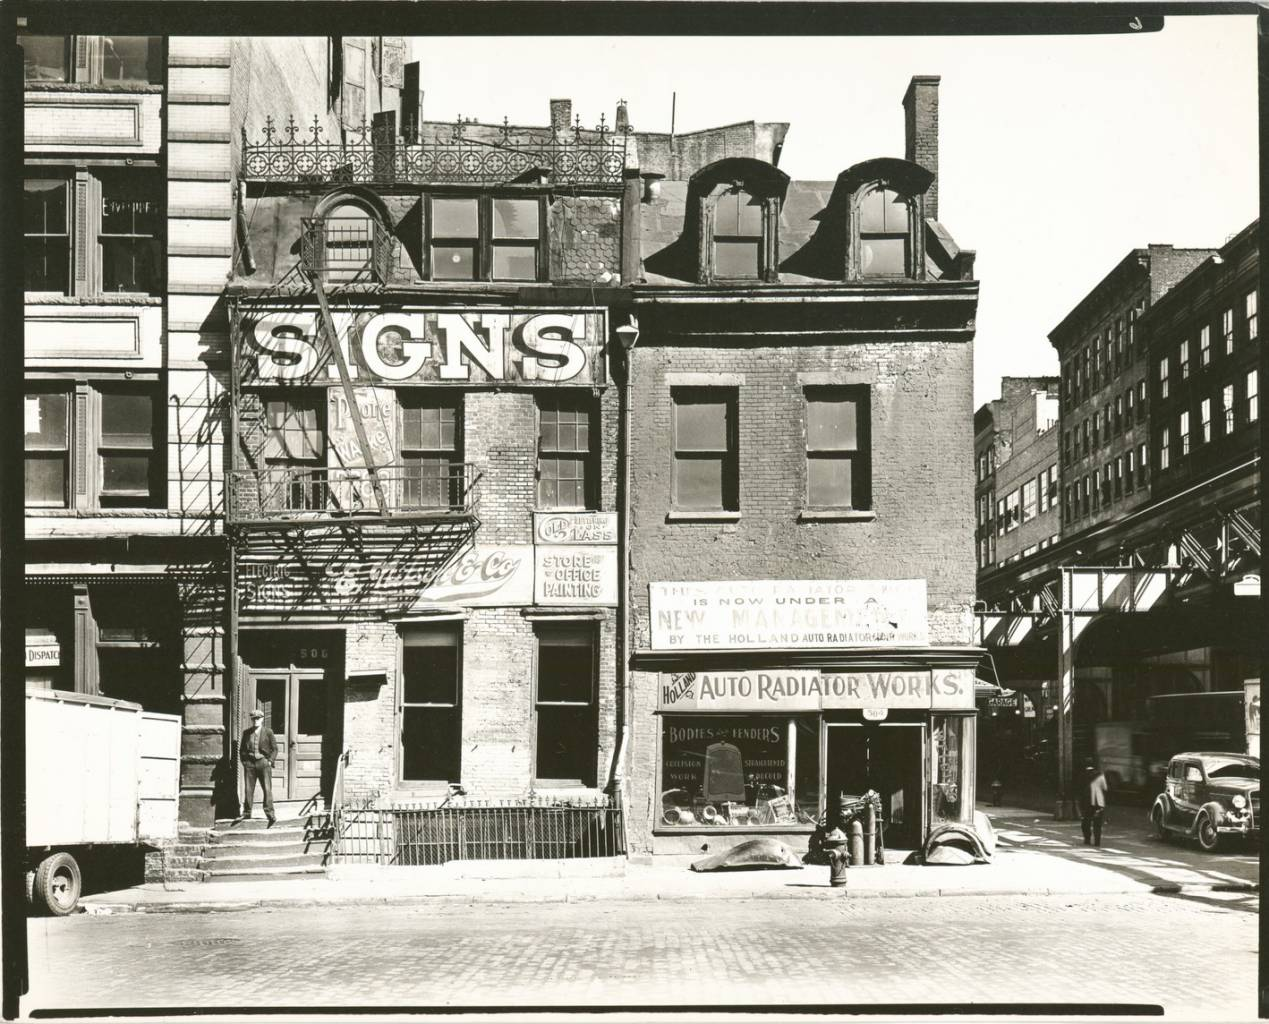 Broome Street, Nos. 504-506, Manhattan